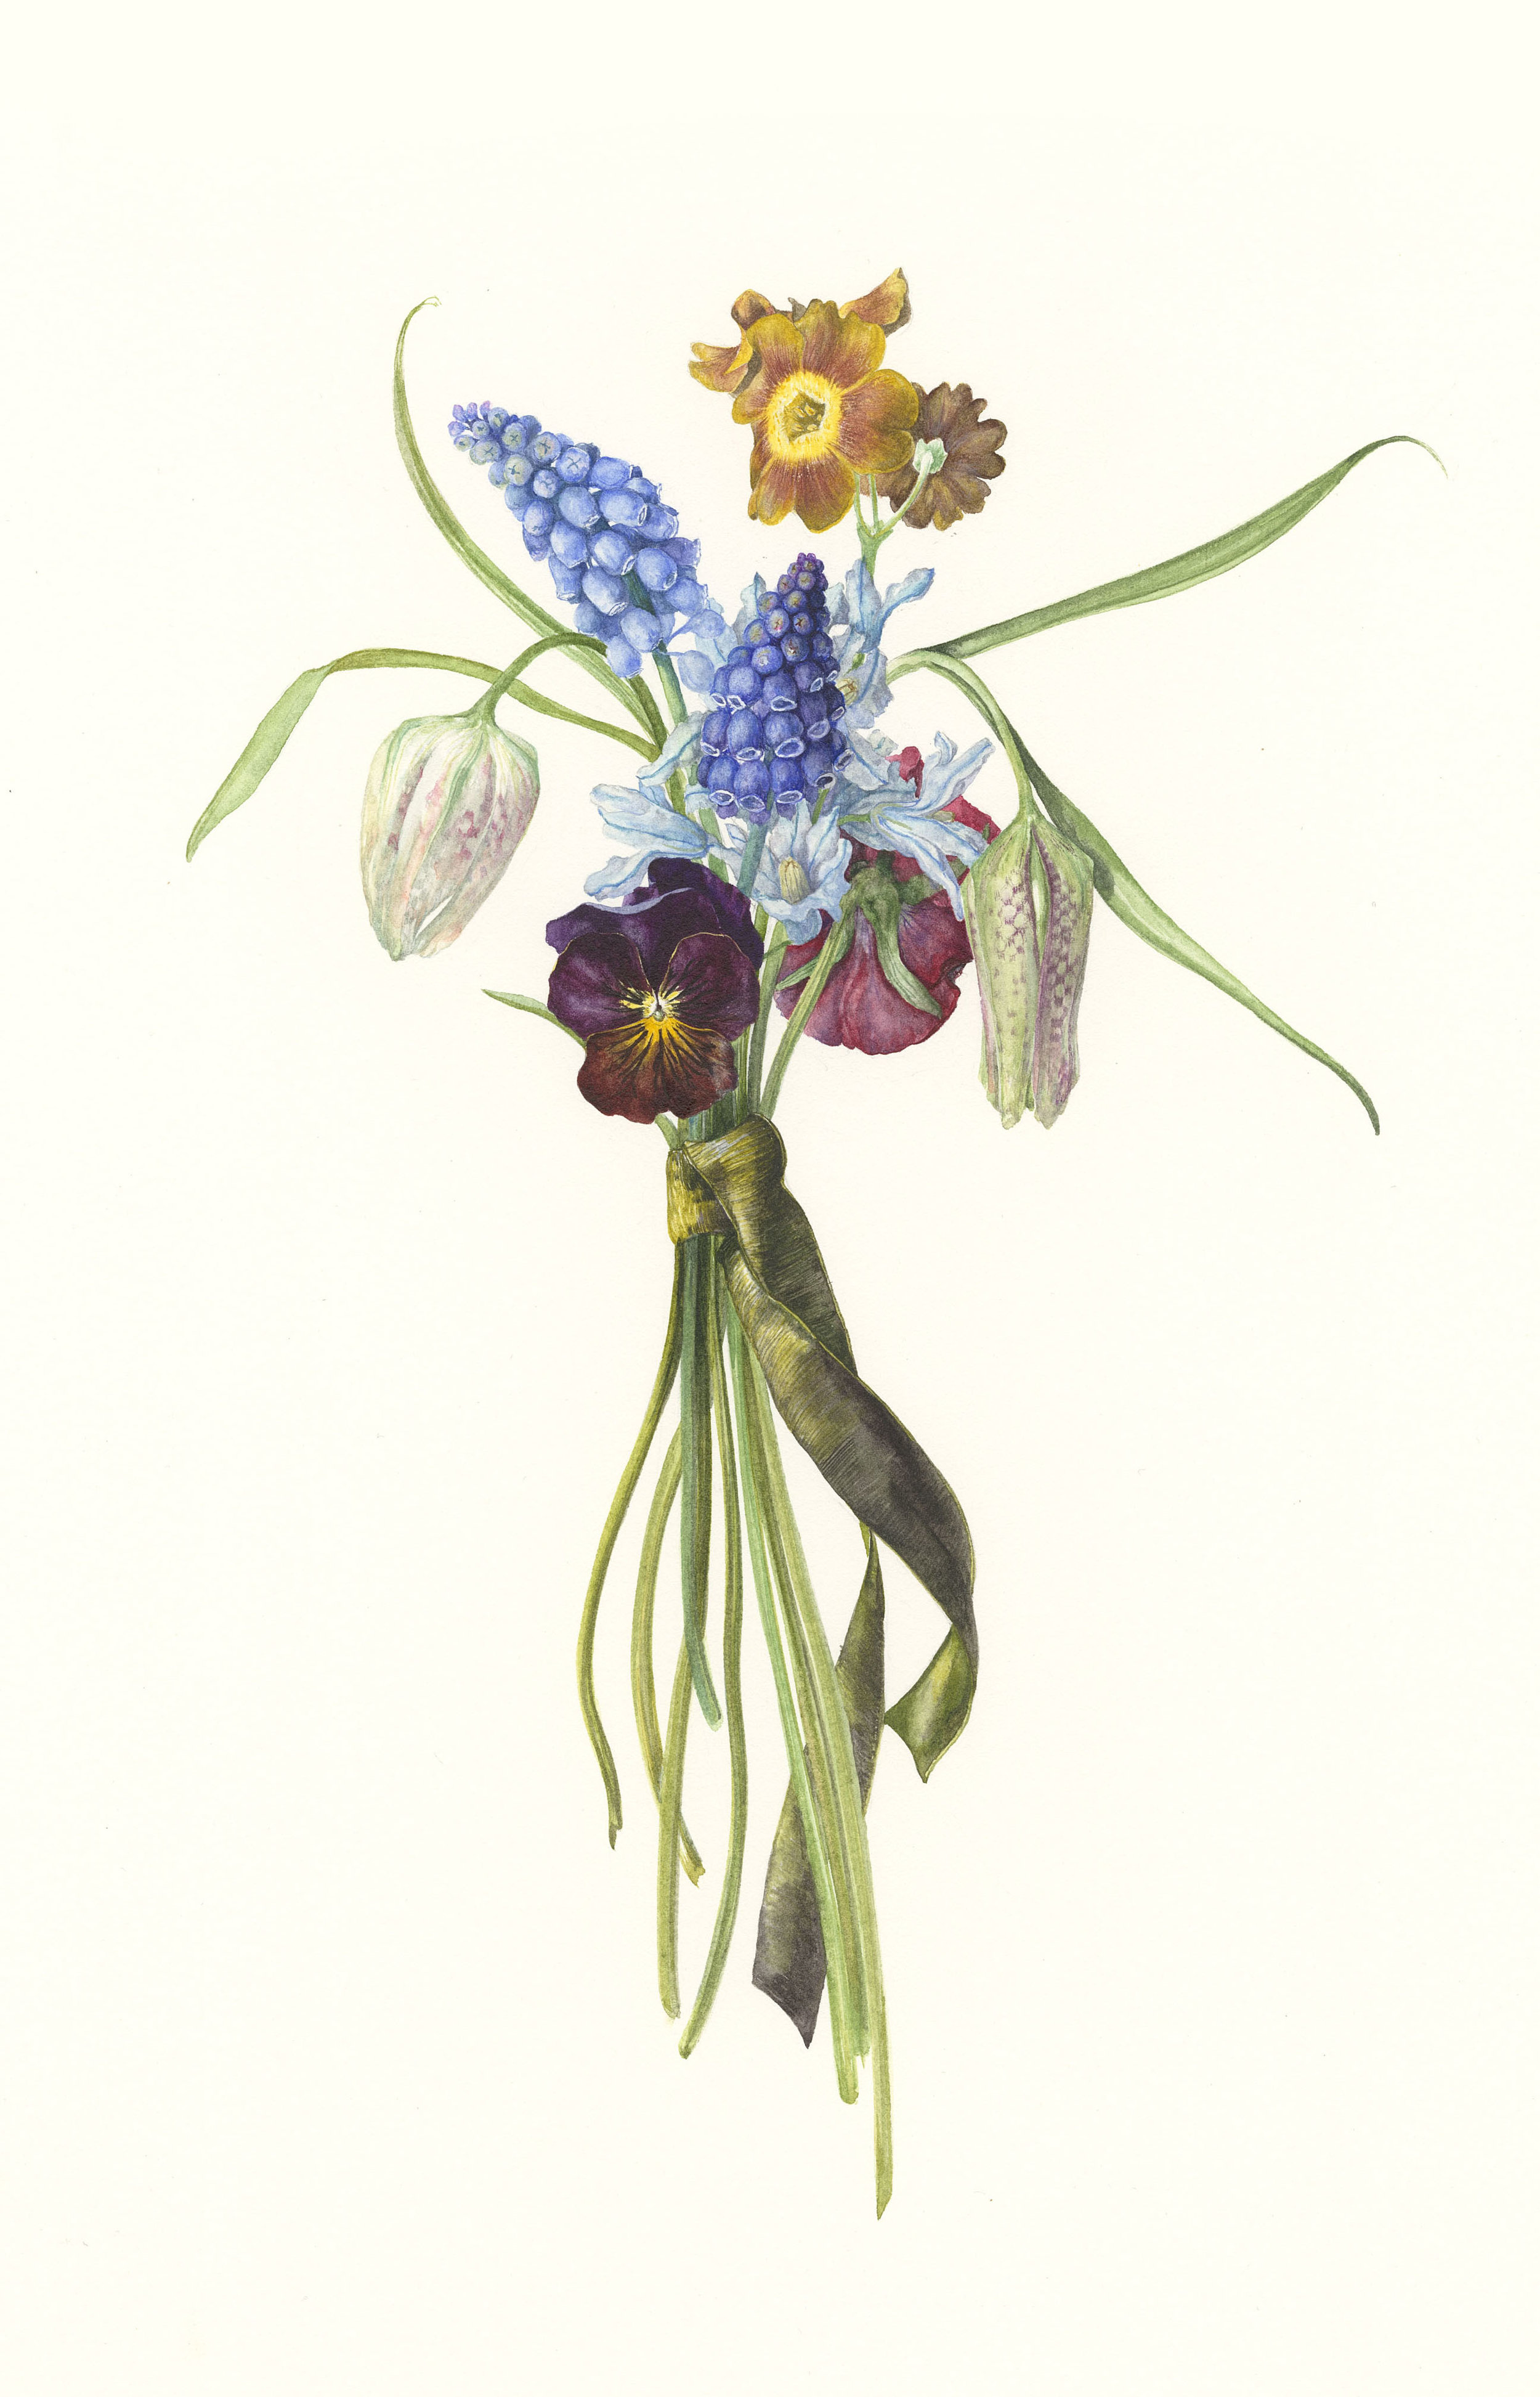 Spring Posy II  watercolour on paper  23 x 35 cm image  36 x 59 cm framed  SOLD